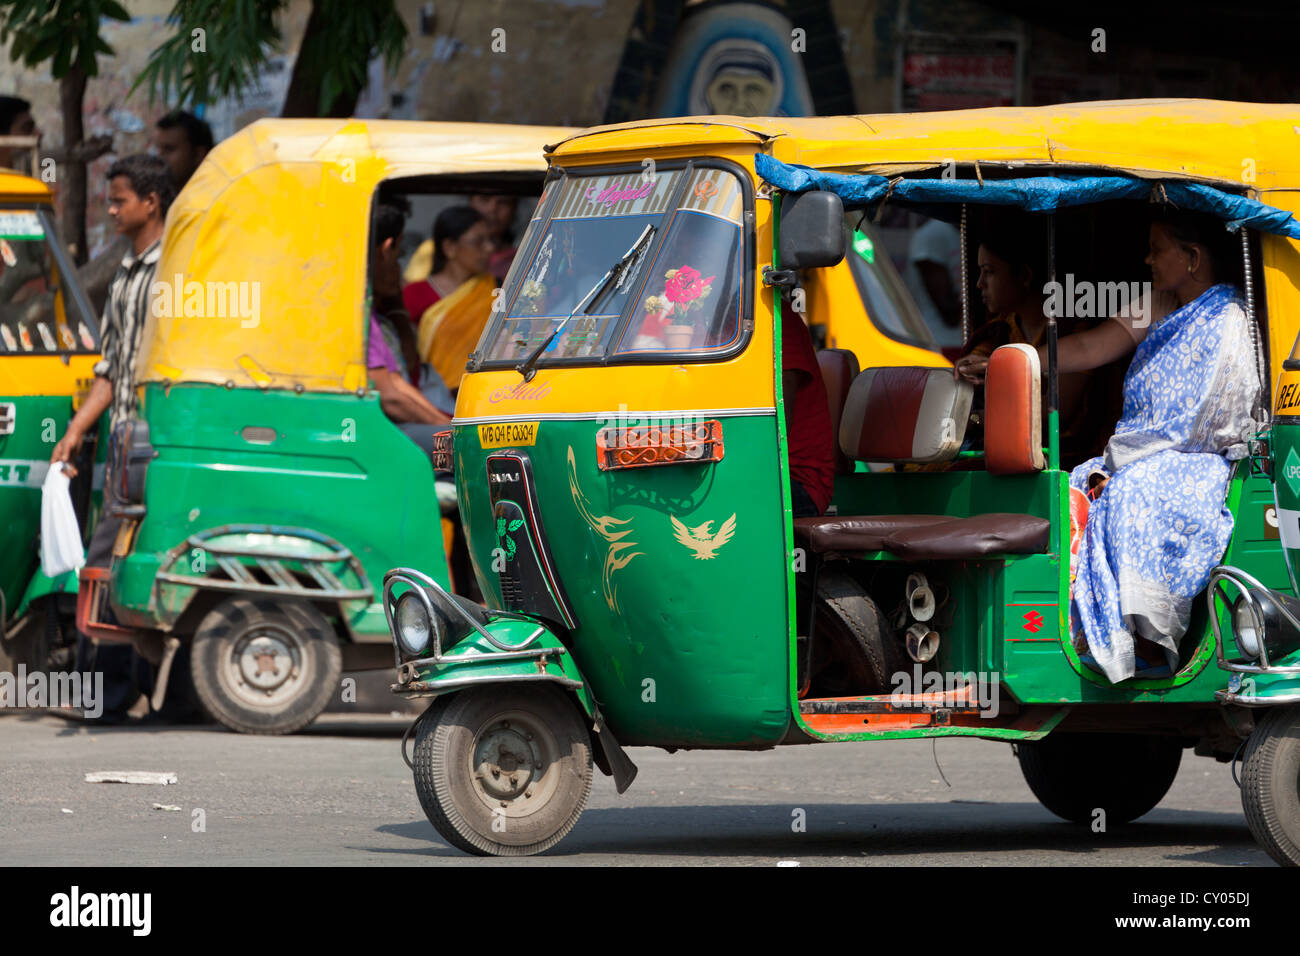 tuk tuk in kolkata india stock photo royalty free image 51020750 alamy. Black Bedroom Furniture Sets. Home Design Ideas